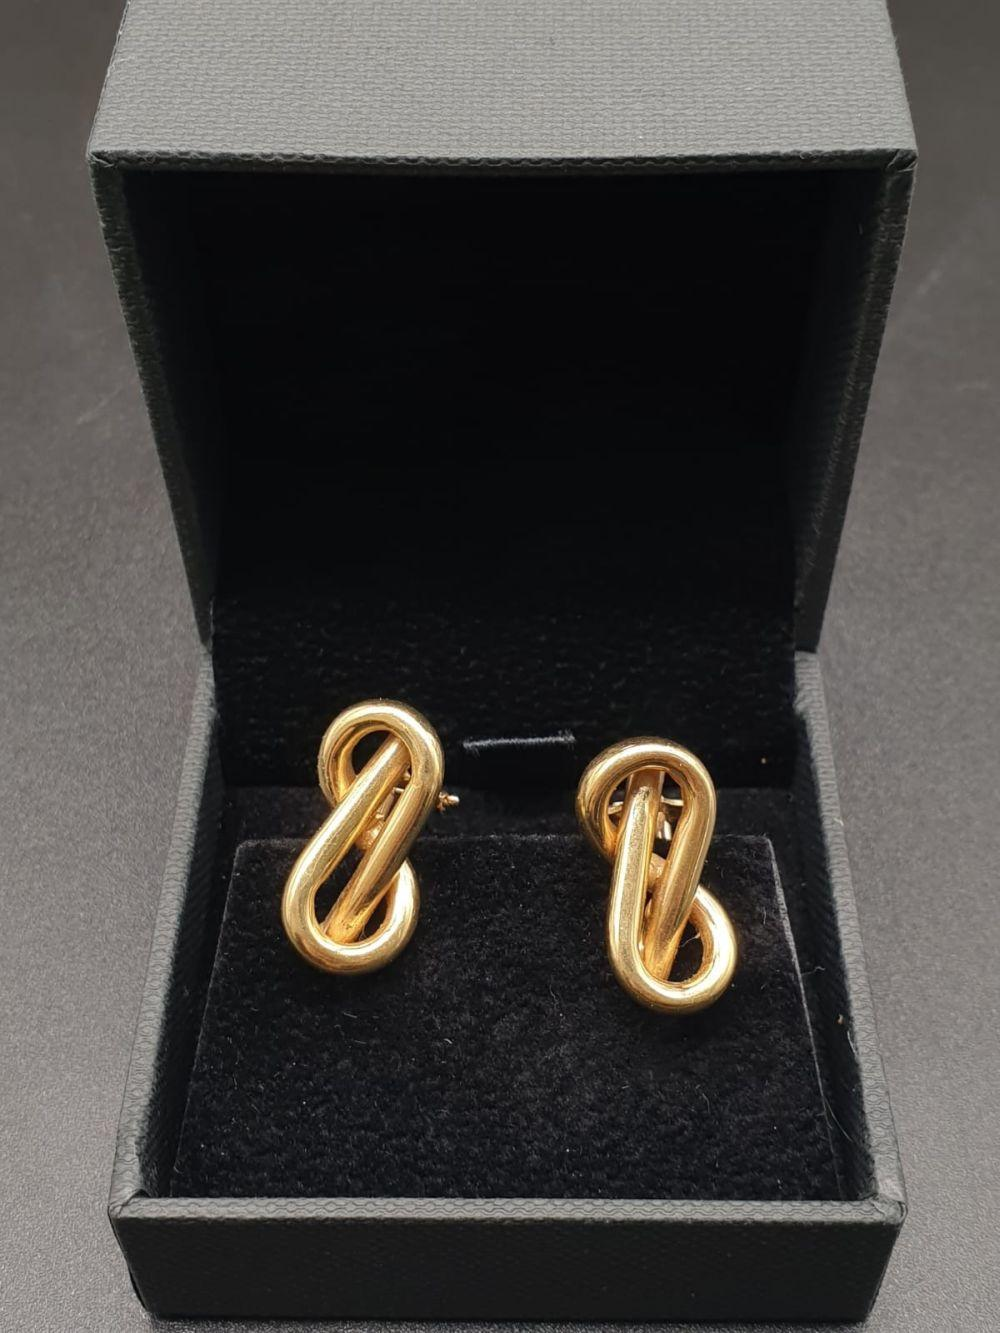 A PAIR OF 18K YELLOW GOLD EARRINGS IN A MODERNISTIC FIGURE 8 SHAPE. 7.91gms (small perforation to top of one) a/f